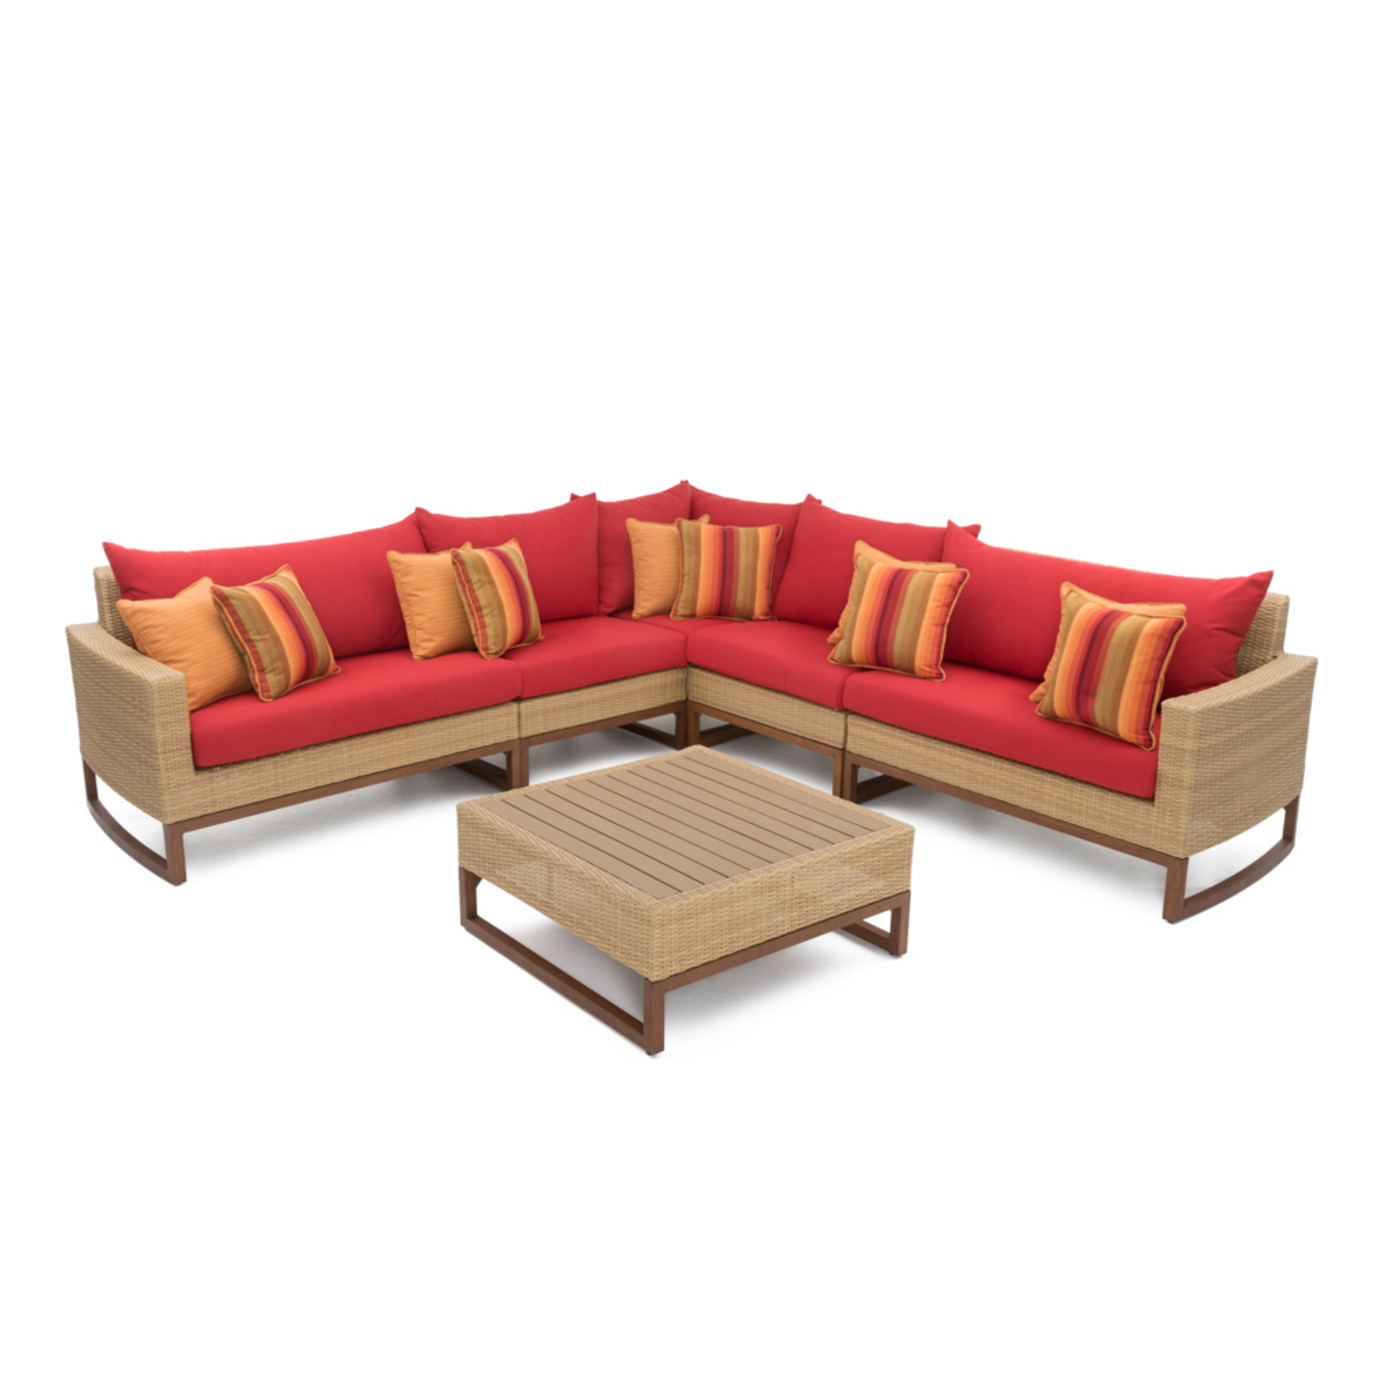 Milea™ 6pc Sofa Sectional - Sunset Red